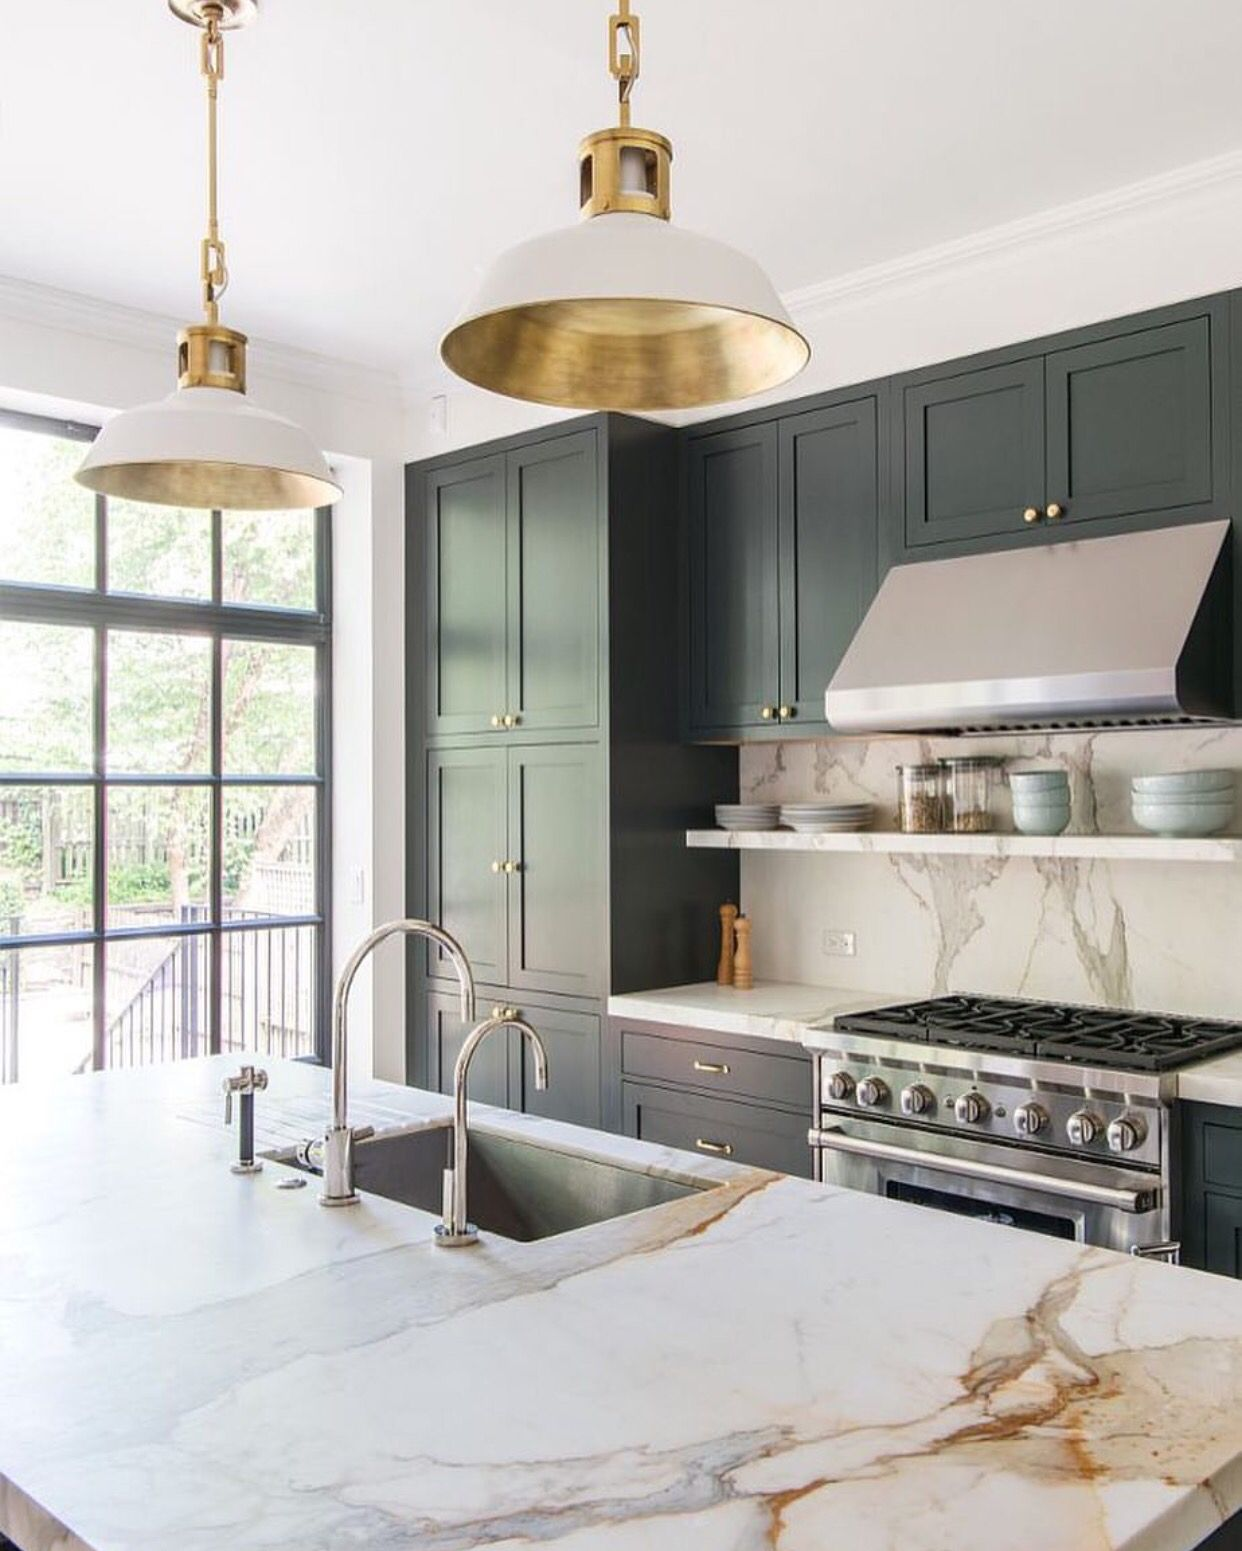 Charcoal Cabinets And Marble Kitchen Design Kitchen Inspirations Kitchen Interior